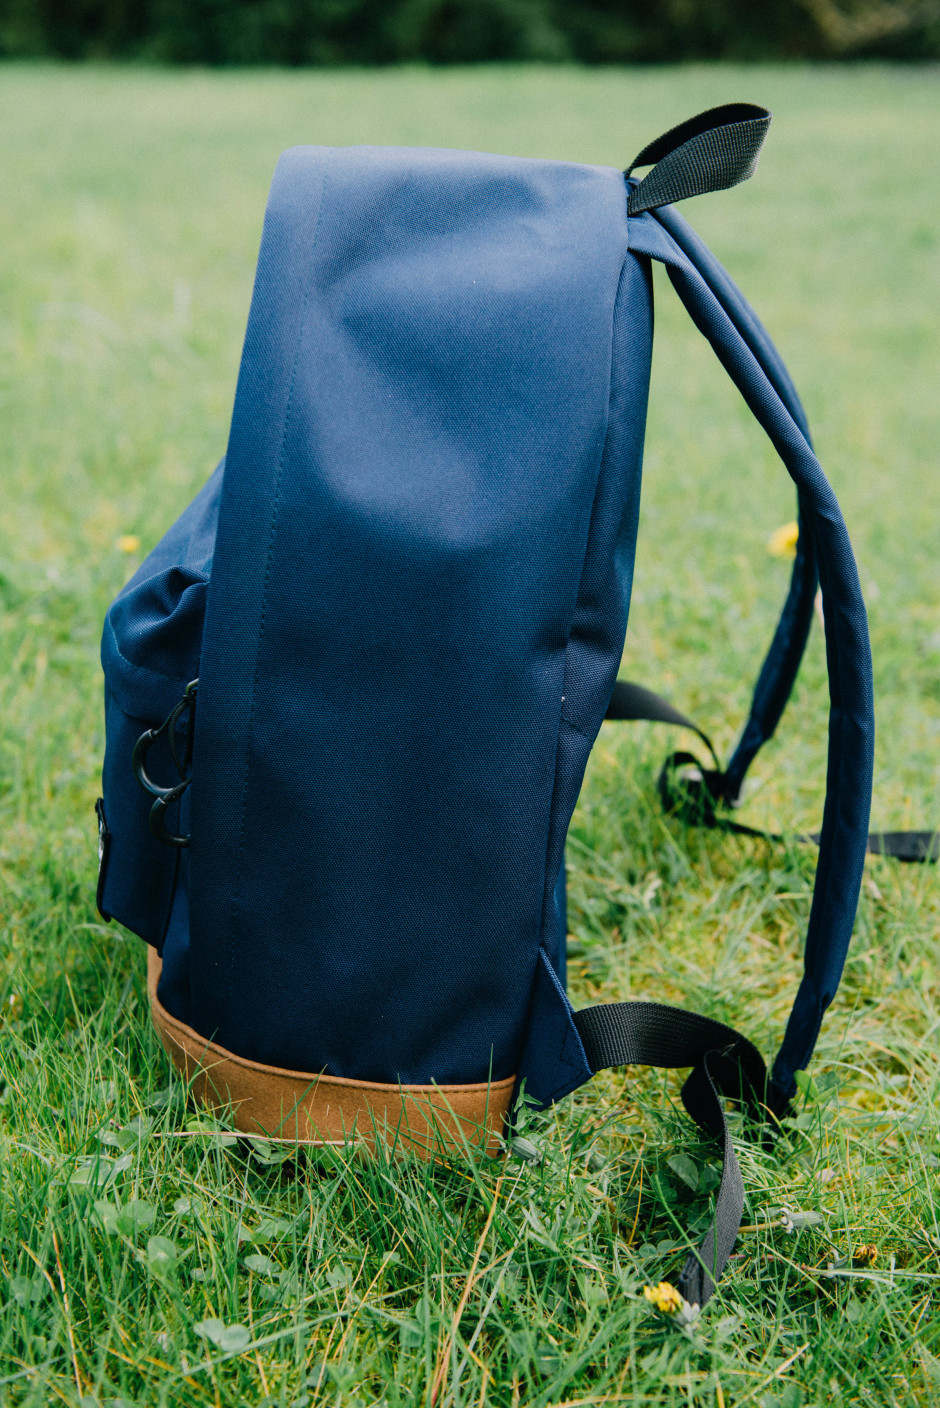 Test du sac photo Traveller 900 d'Inzago, un sac photo simple et discret